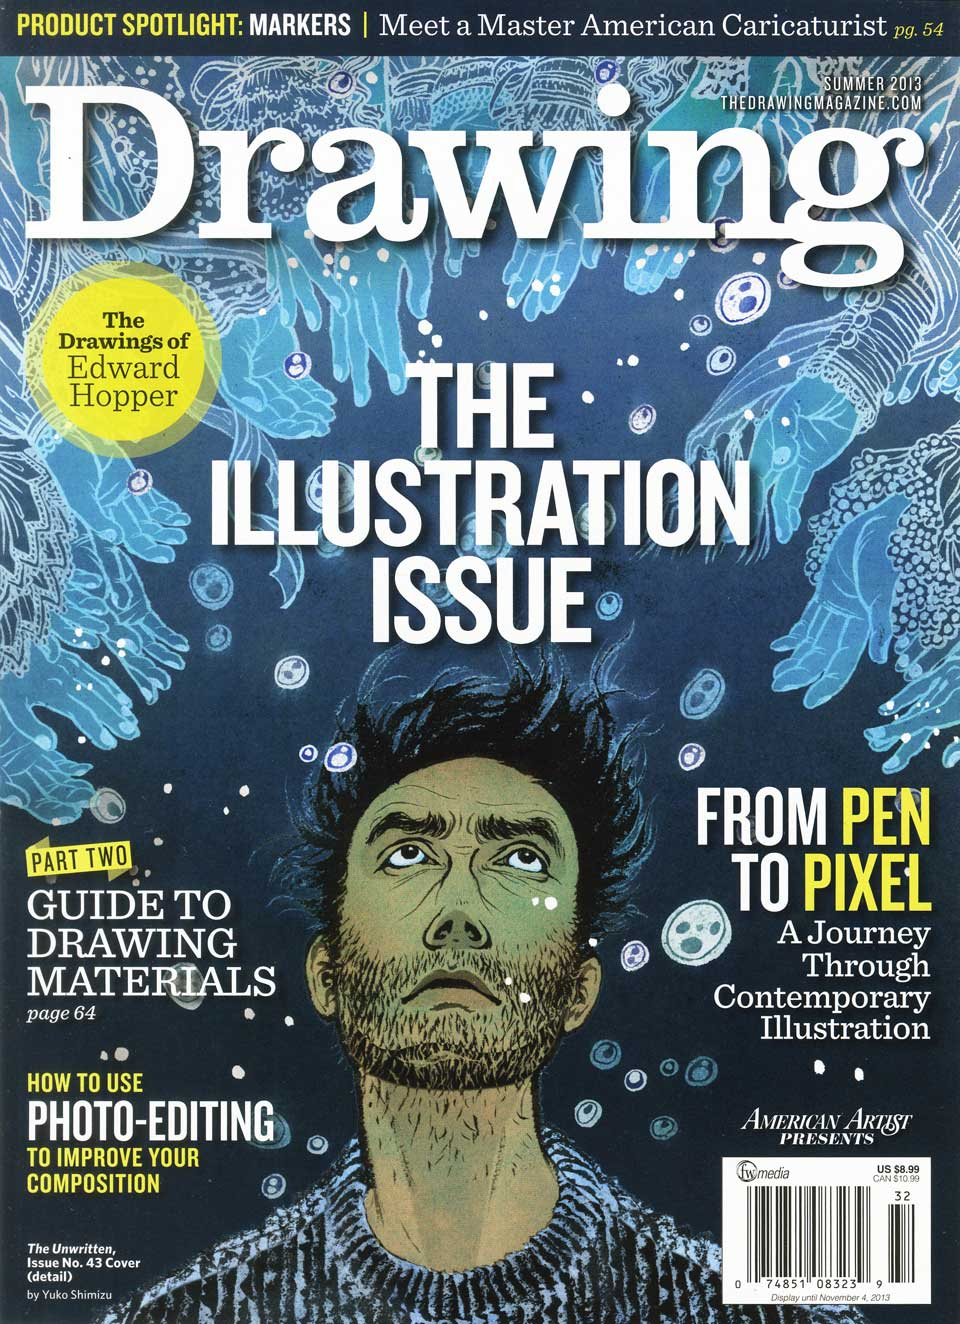 drawing_cover